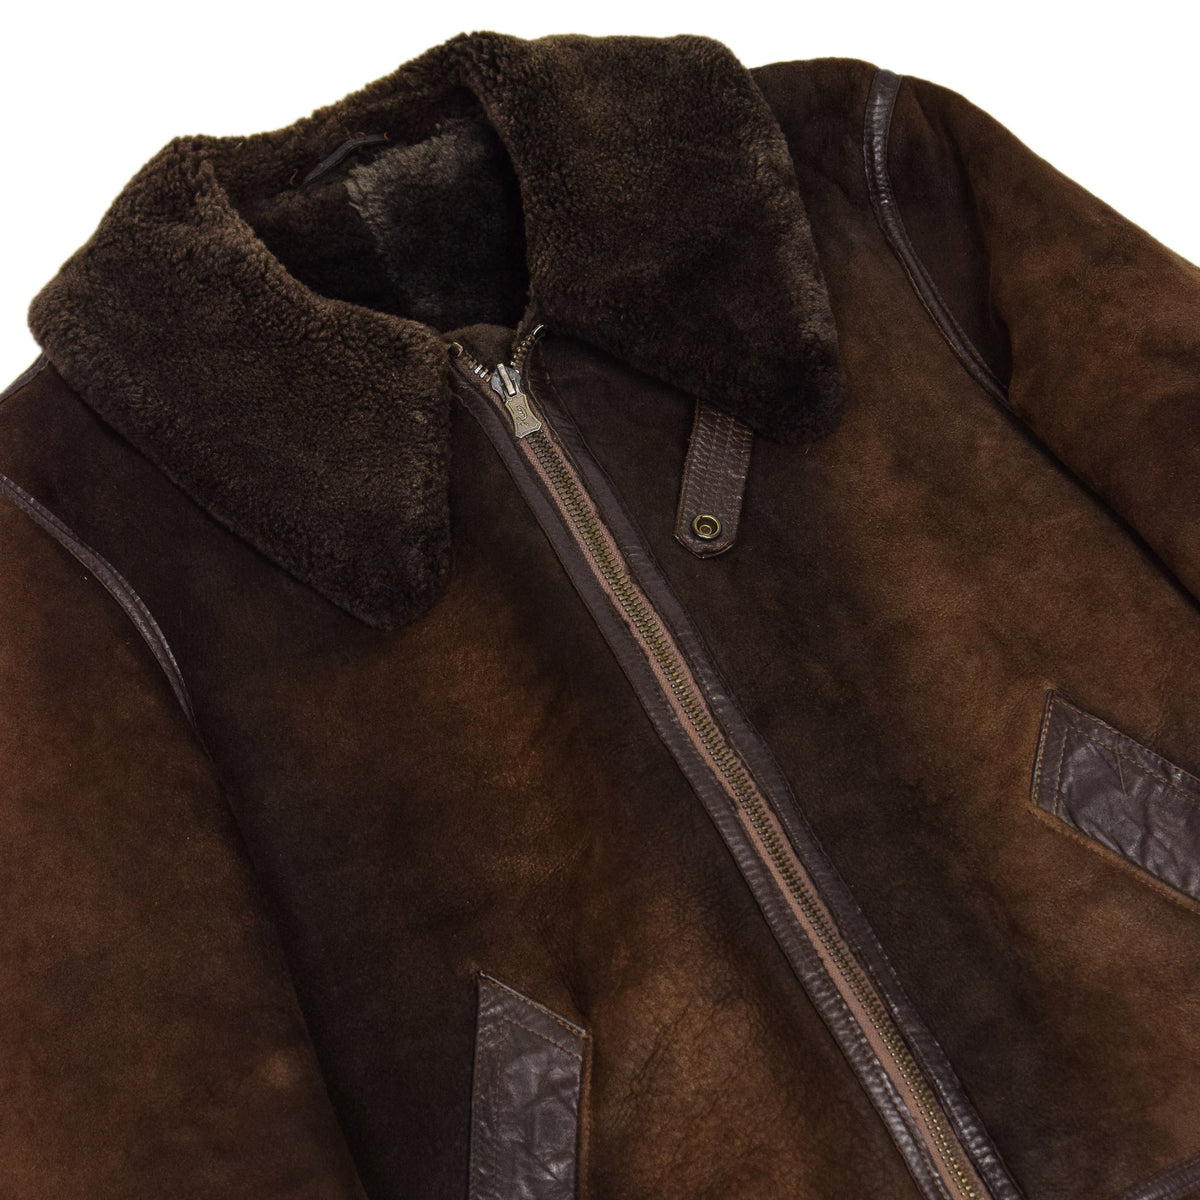 Vintage Huc Of Sweden B3 Style Shearling Sheepskin Bomber Jacket Brown L chest